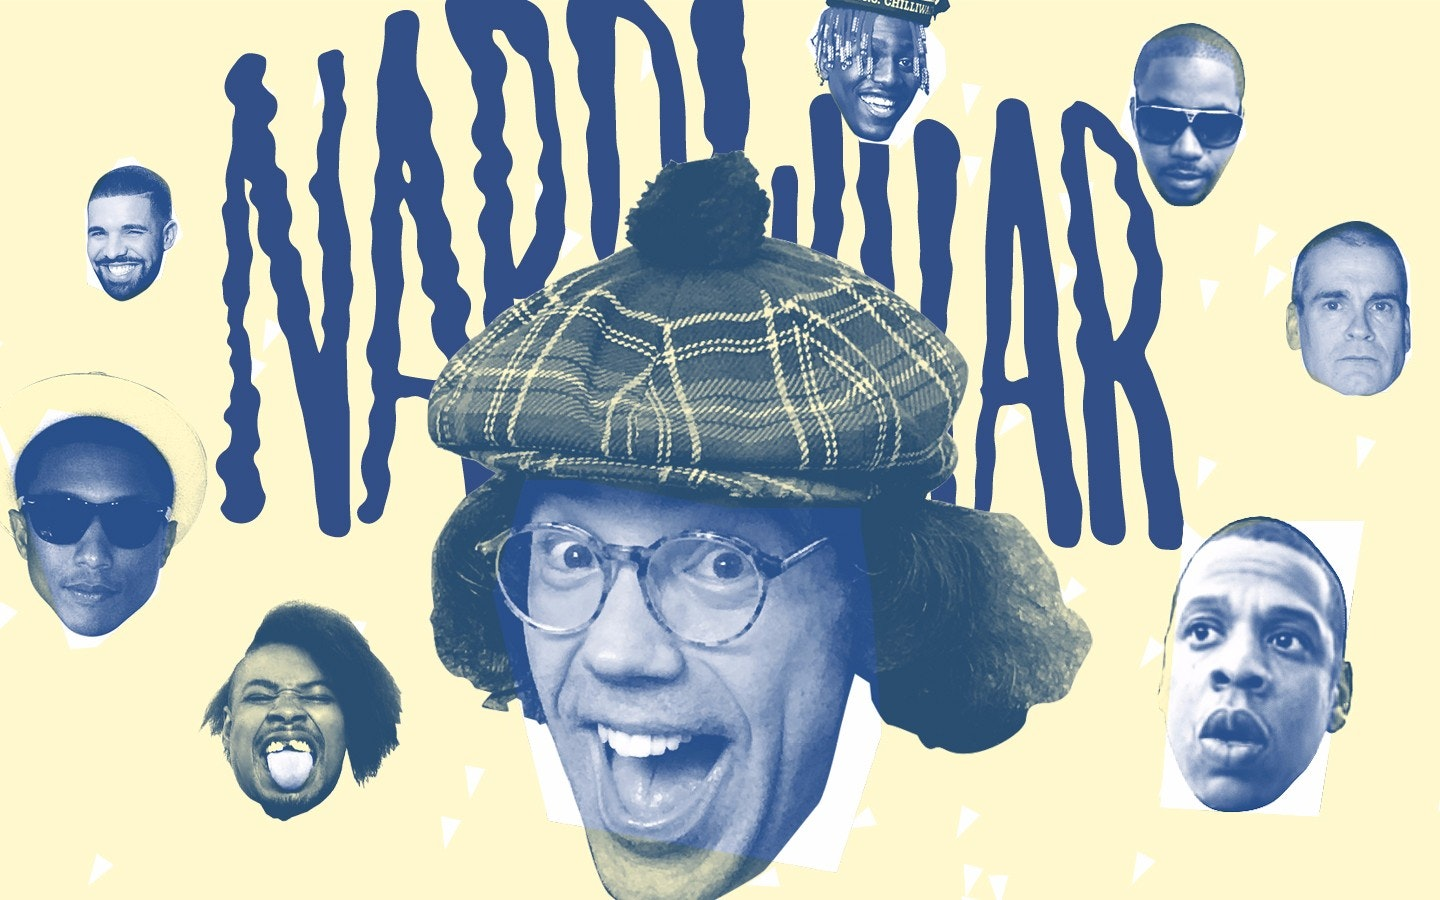 Nardwuar, the most mysterious man in music journalism